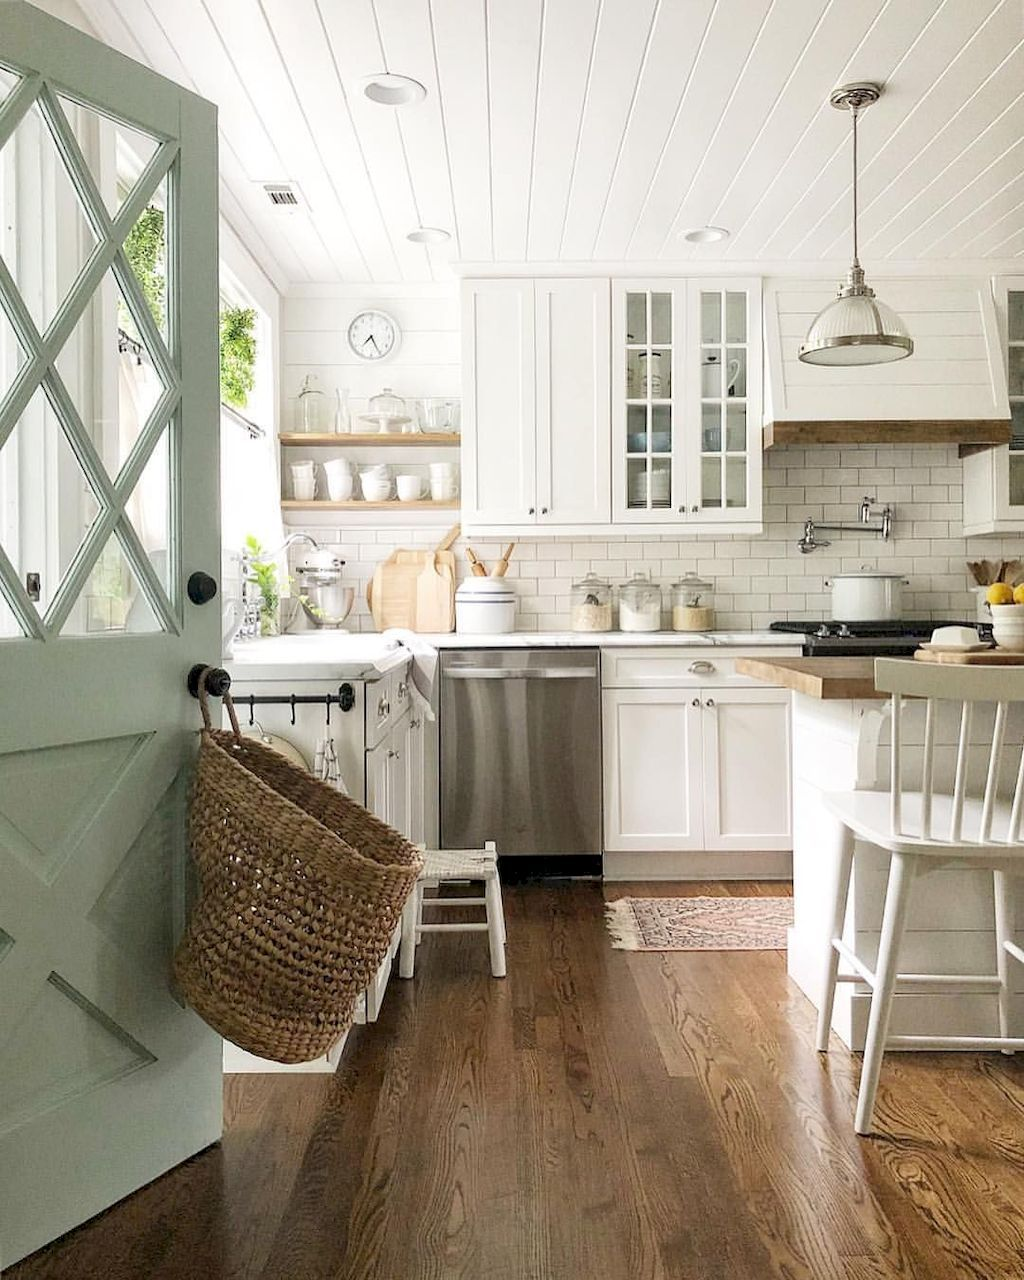 17 Rustic Farmhouse Kitchen Decorating Ideas  Cuisines maison